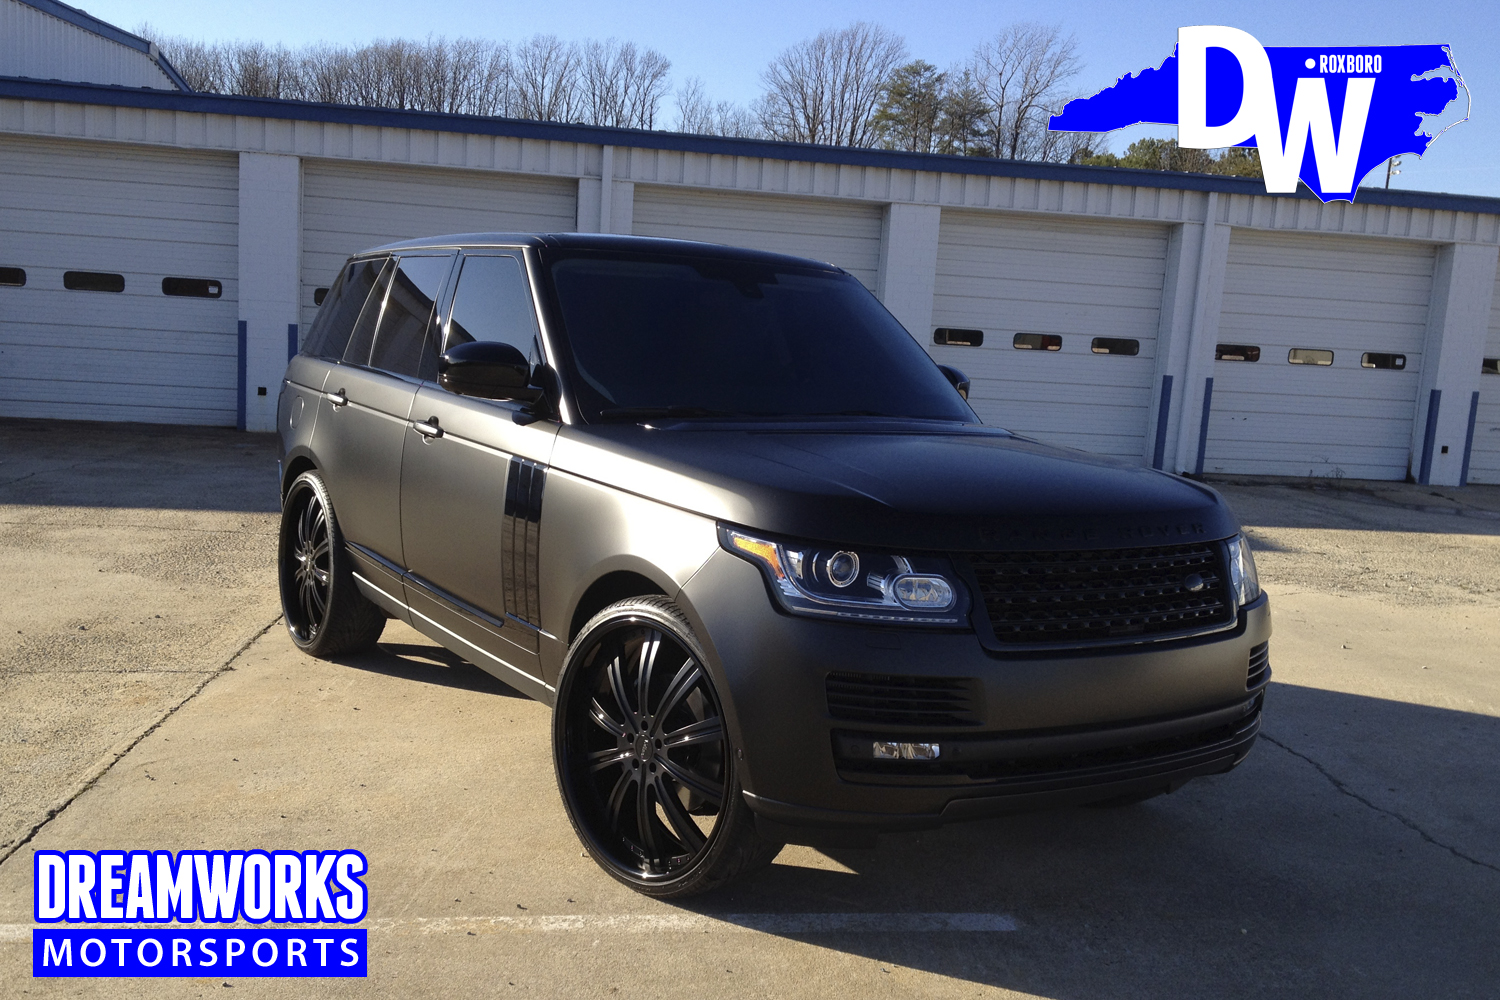 Wesley-Mathews-Range-Rover-Matte-Wrapped-By-Dreamworks-Motorsports-7.jpg